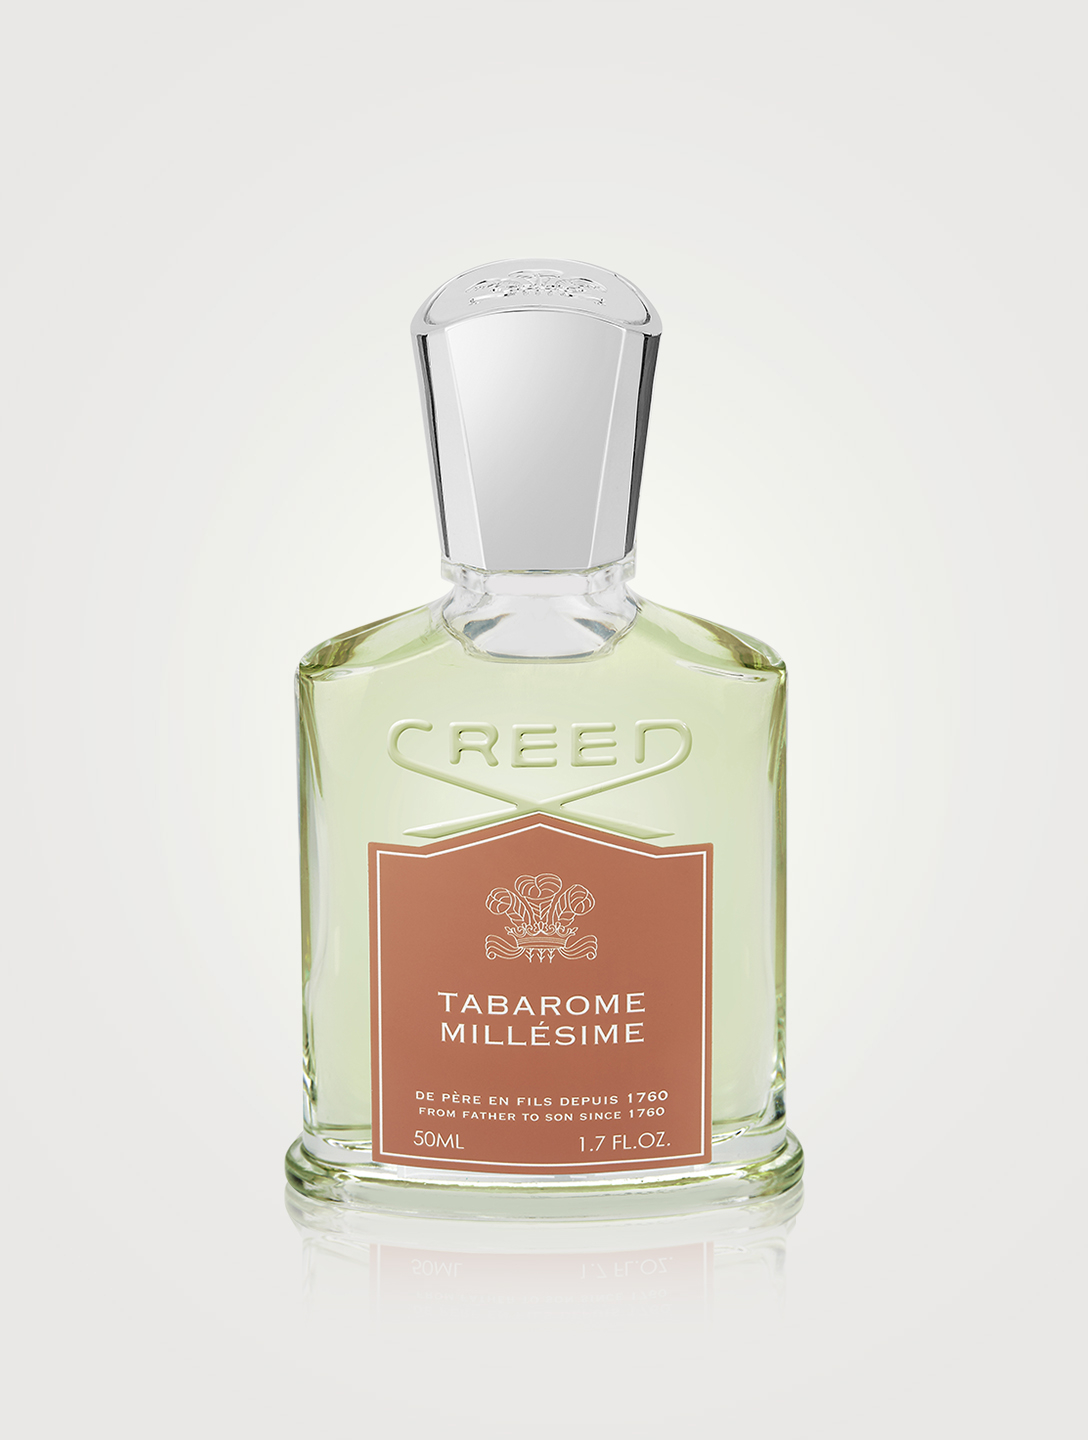 CREED Tabarome Millesime Eau de Parfum Beauty